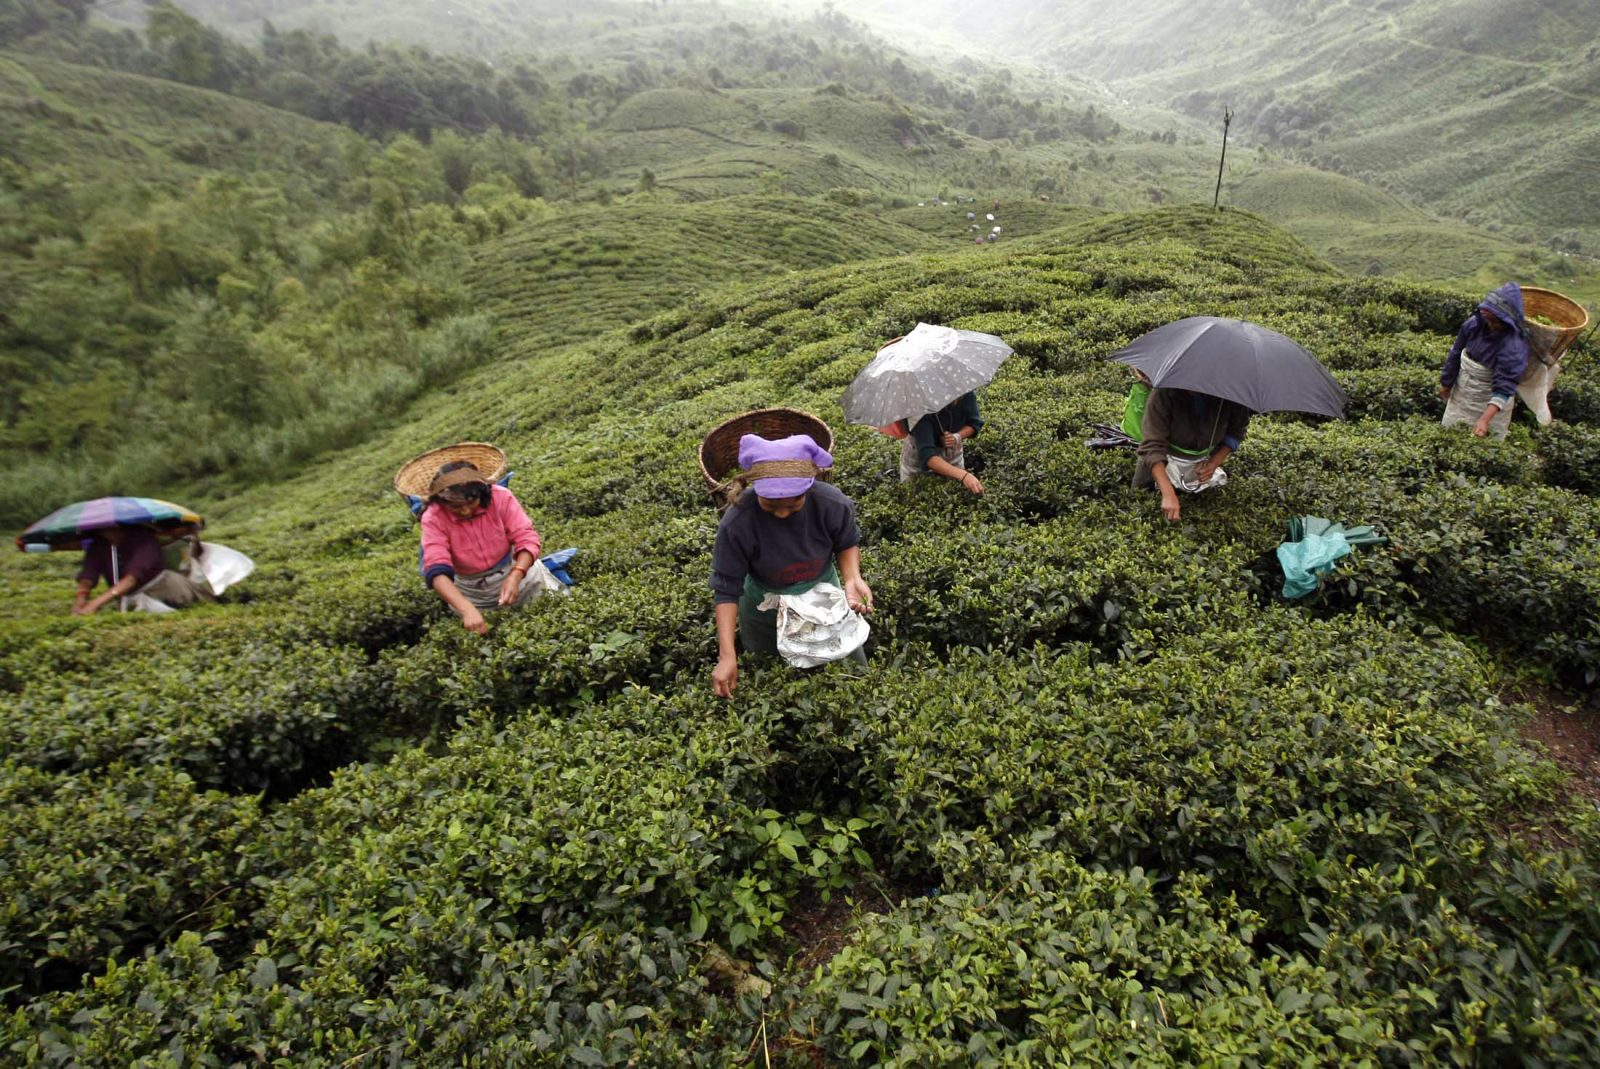 """Labourers pluck tea leaves in a tea plantation at Shipaidura village, about 40 km (25 miles) north of the northeastern hill resort of Darjeeling, June 23, 2008. Gorkhas, who are ethnic Nepalis, called an indefinite strike in the region on June 10 and are demanding a separate state of """"Gorkhaland"""" be carved out of the eastern state of West Bengal to protect their culture and heritage. The strike has badly hit the tourism and the tea industry, two mainstays of the local economy. A tea industry official has warned exports of premium Darjeeling tea could fall 20-25 percent this year.    REUTERS/Rupak De Chowdhuri (INDIA) - RTX7999"""